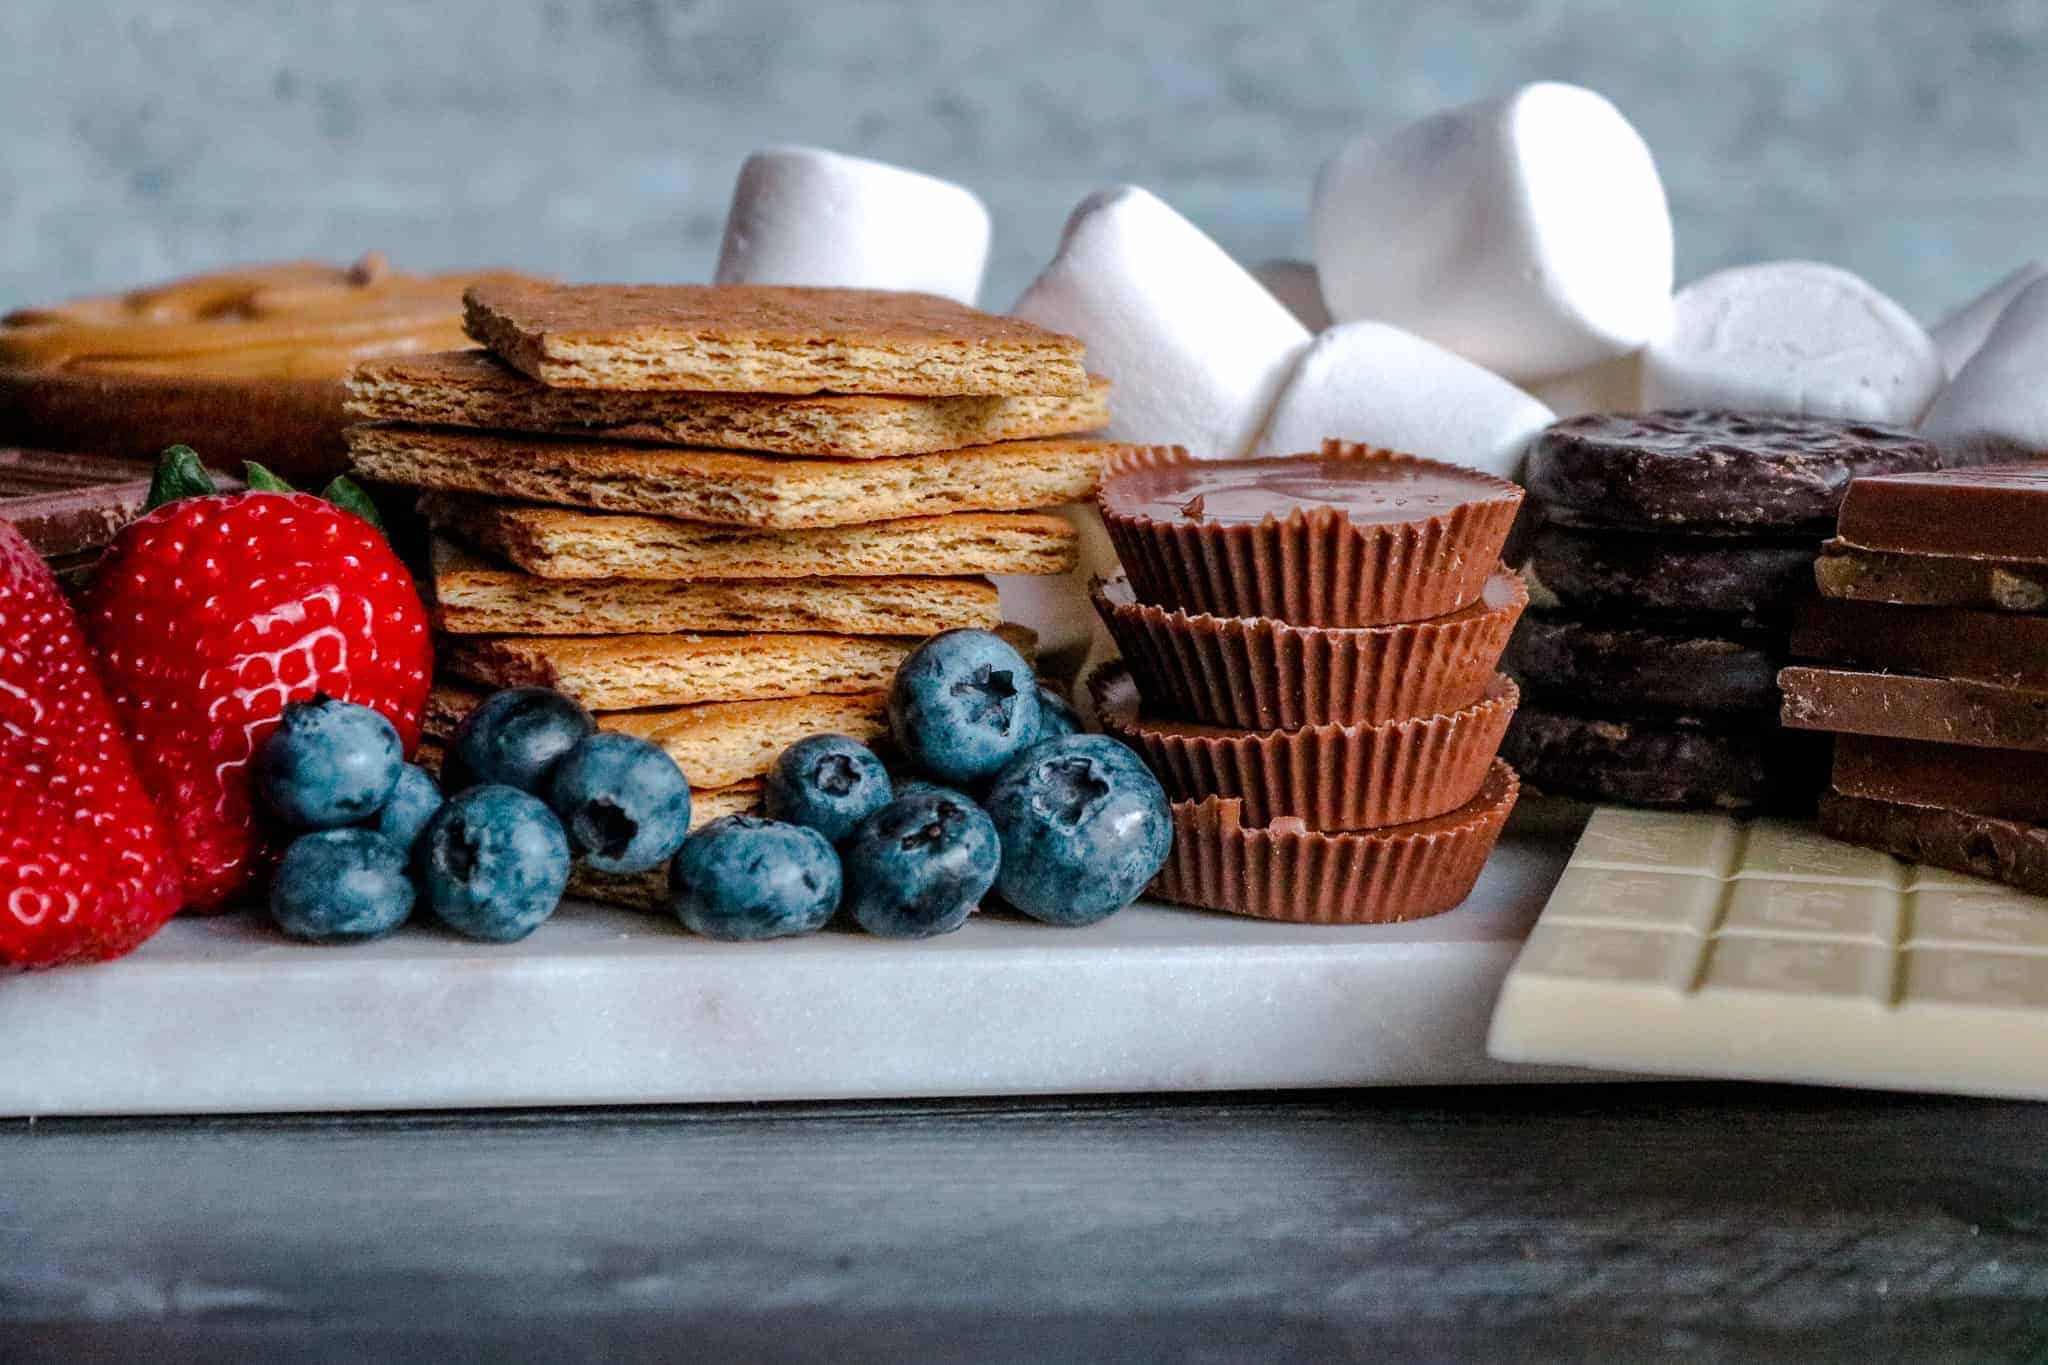 How to Make a Loaded S'mores Board: Head on shot of s'mores board